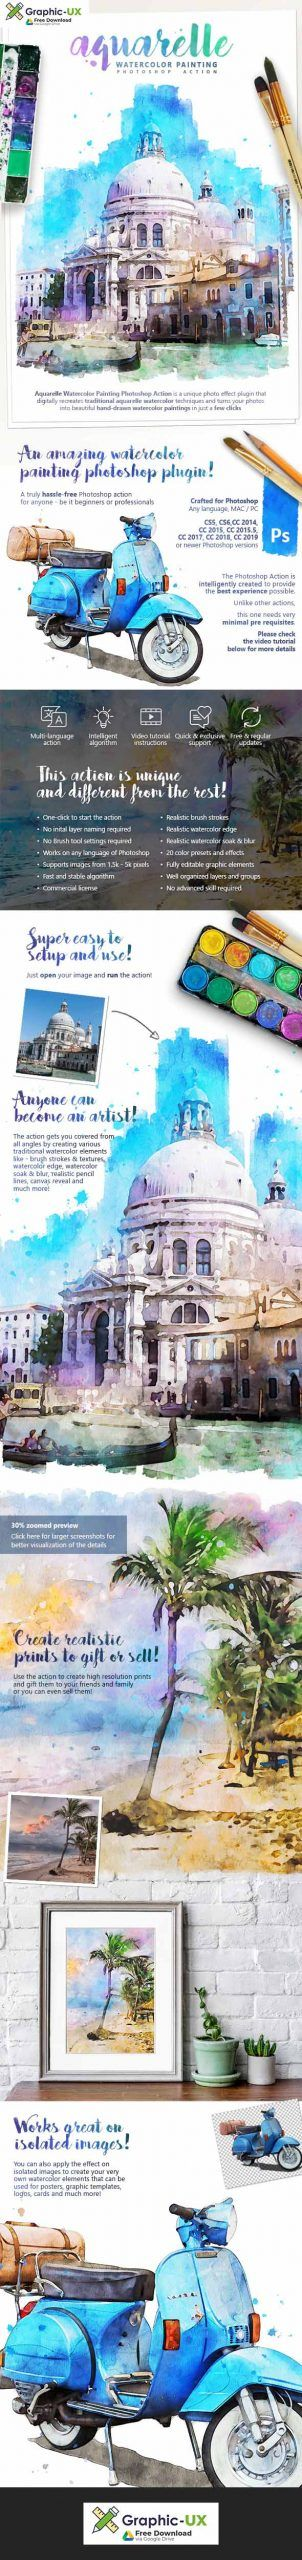 Aquarelle Watercolor Painting Photoshop Action Graphicux In